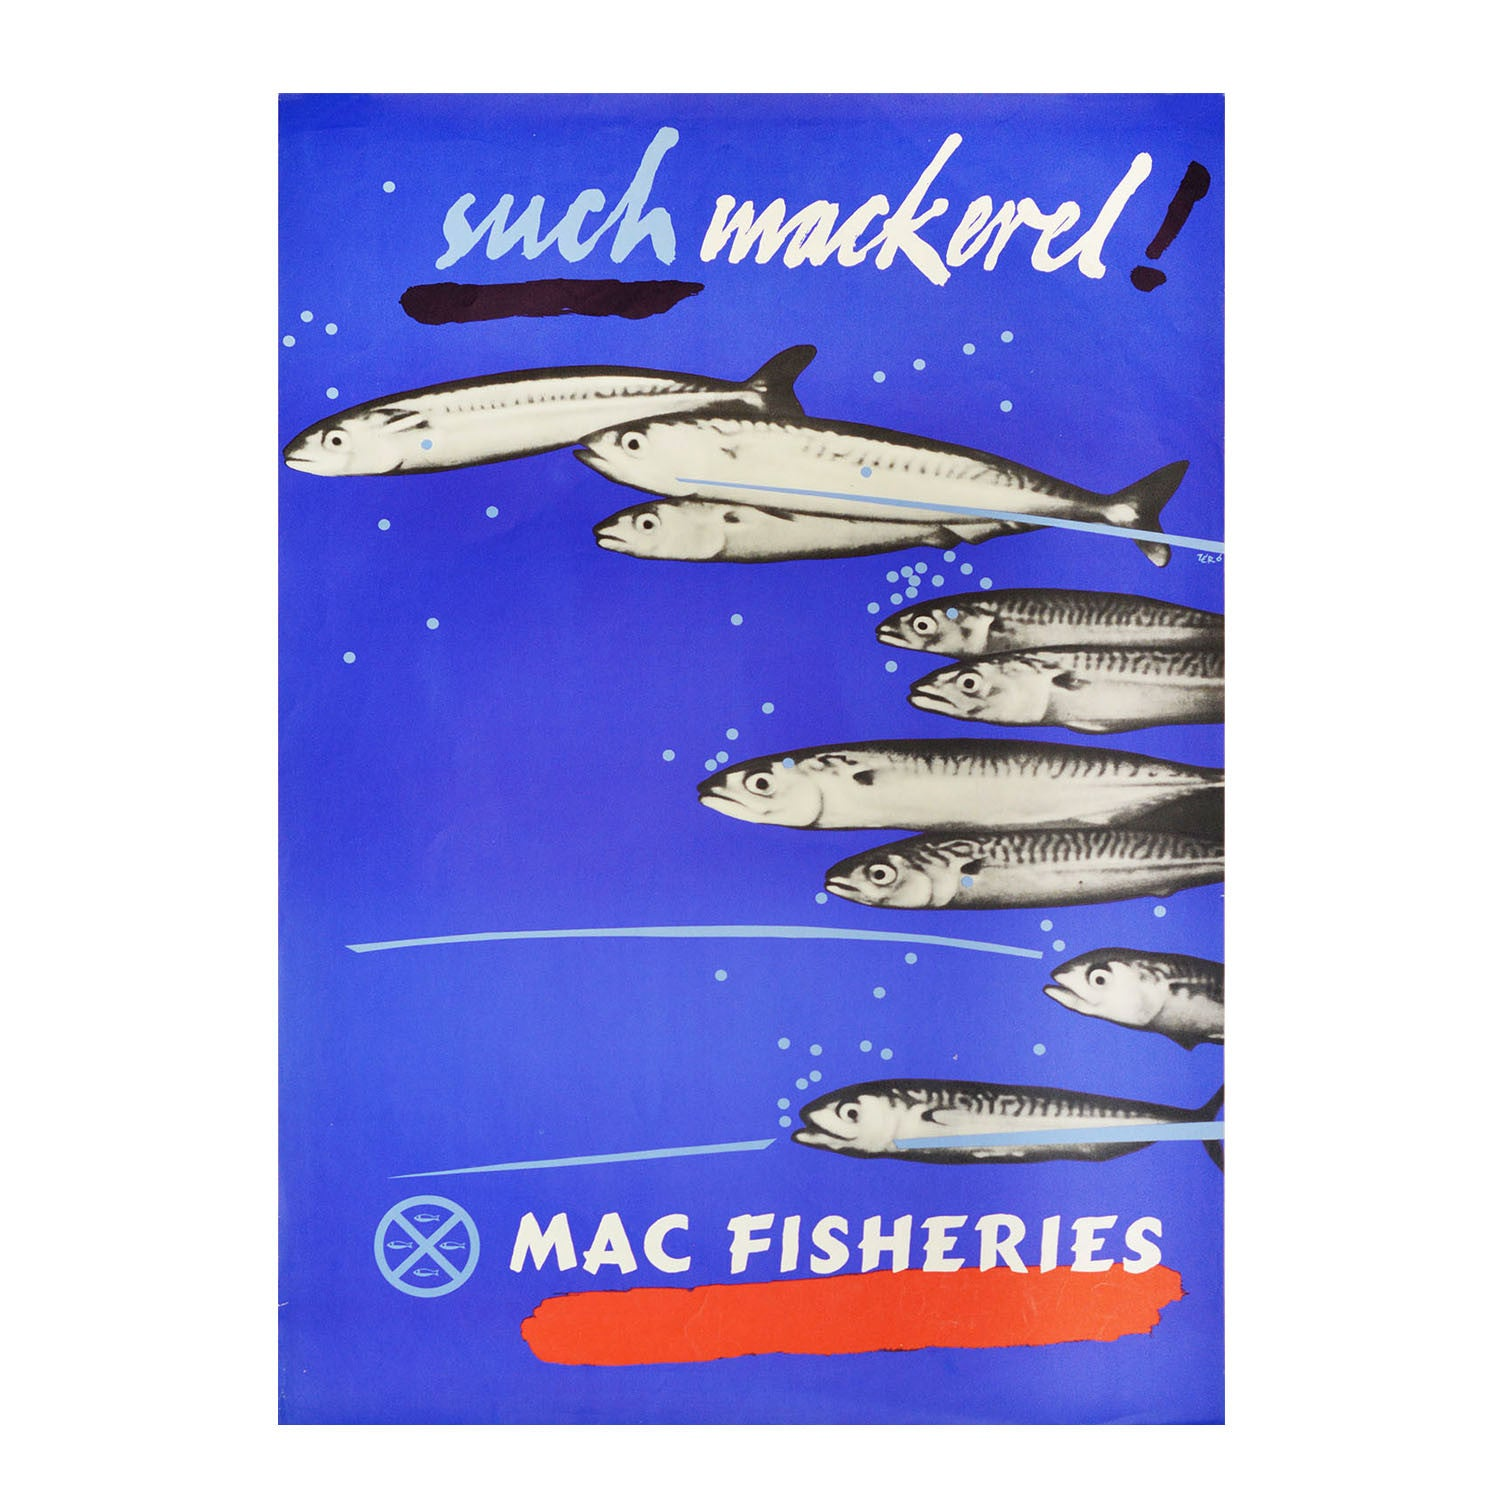 Original 1950s Mac Fisheries poster by Hans Schleger (1898-1976)